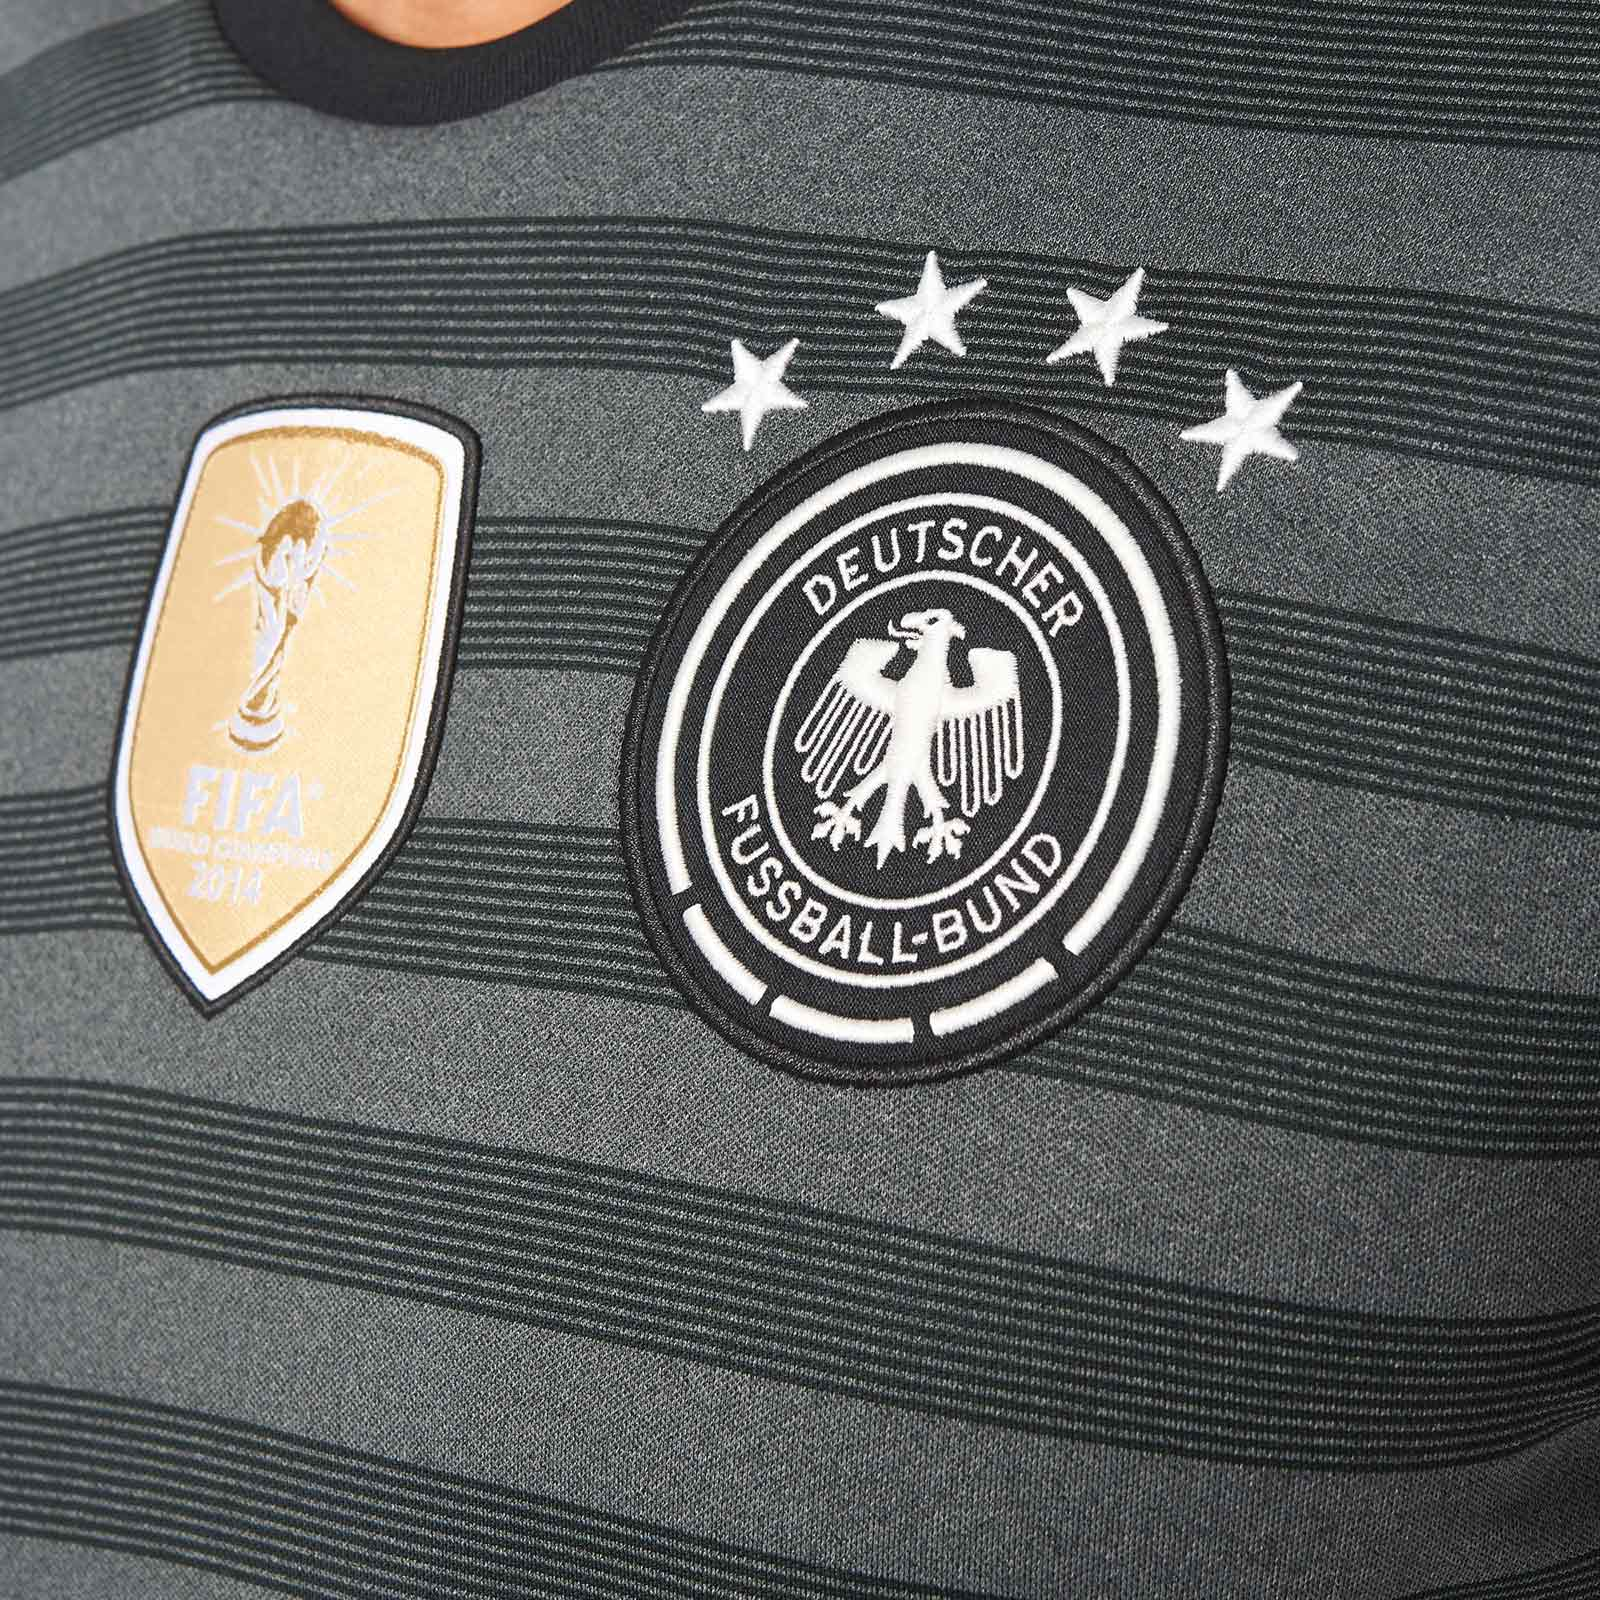 Discount Germany Euro 2016 Away Kit Released 945173c41d0a3